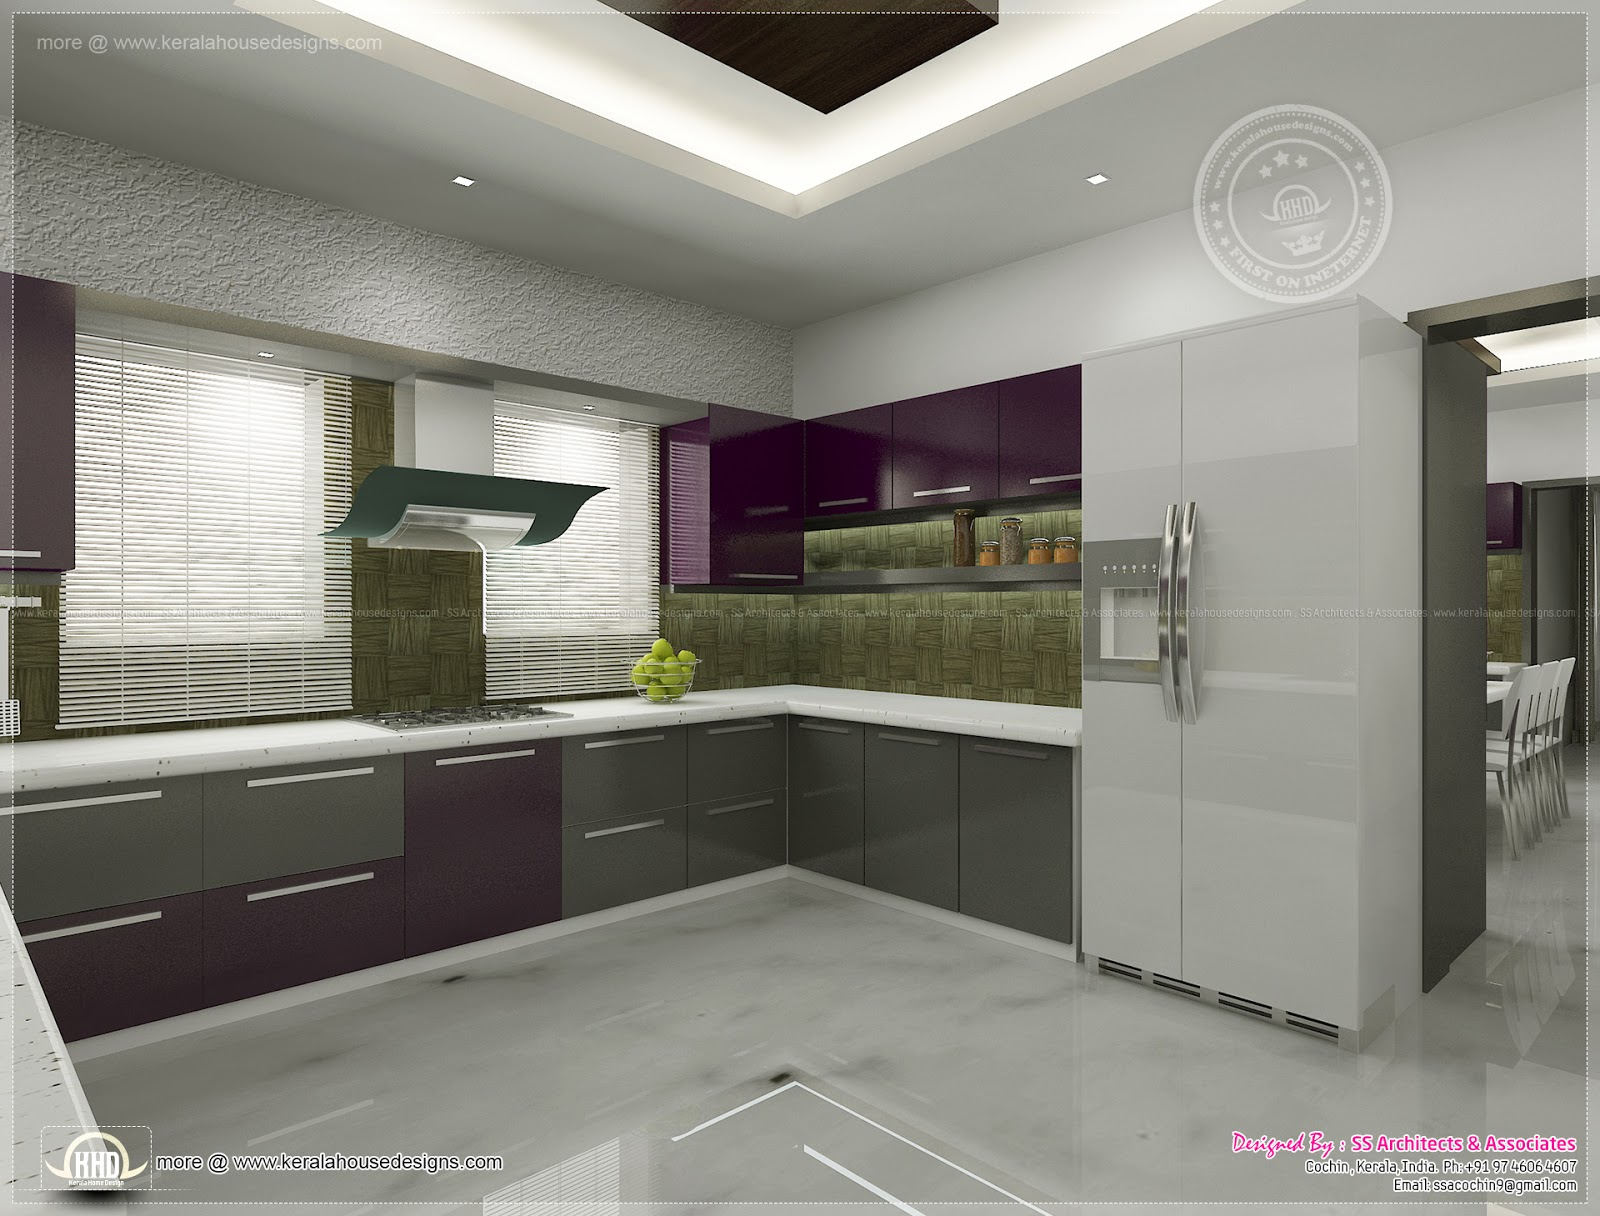 Kitchen interior views by ss architects cochin home kerala plans - Interior design kitchen ...